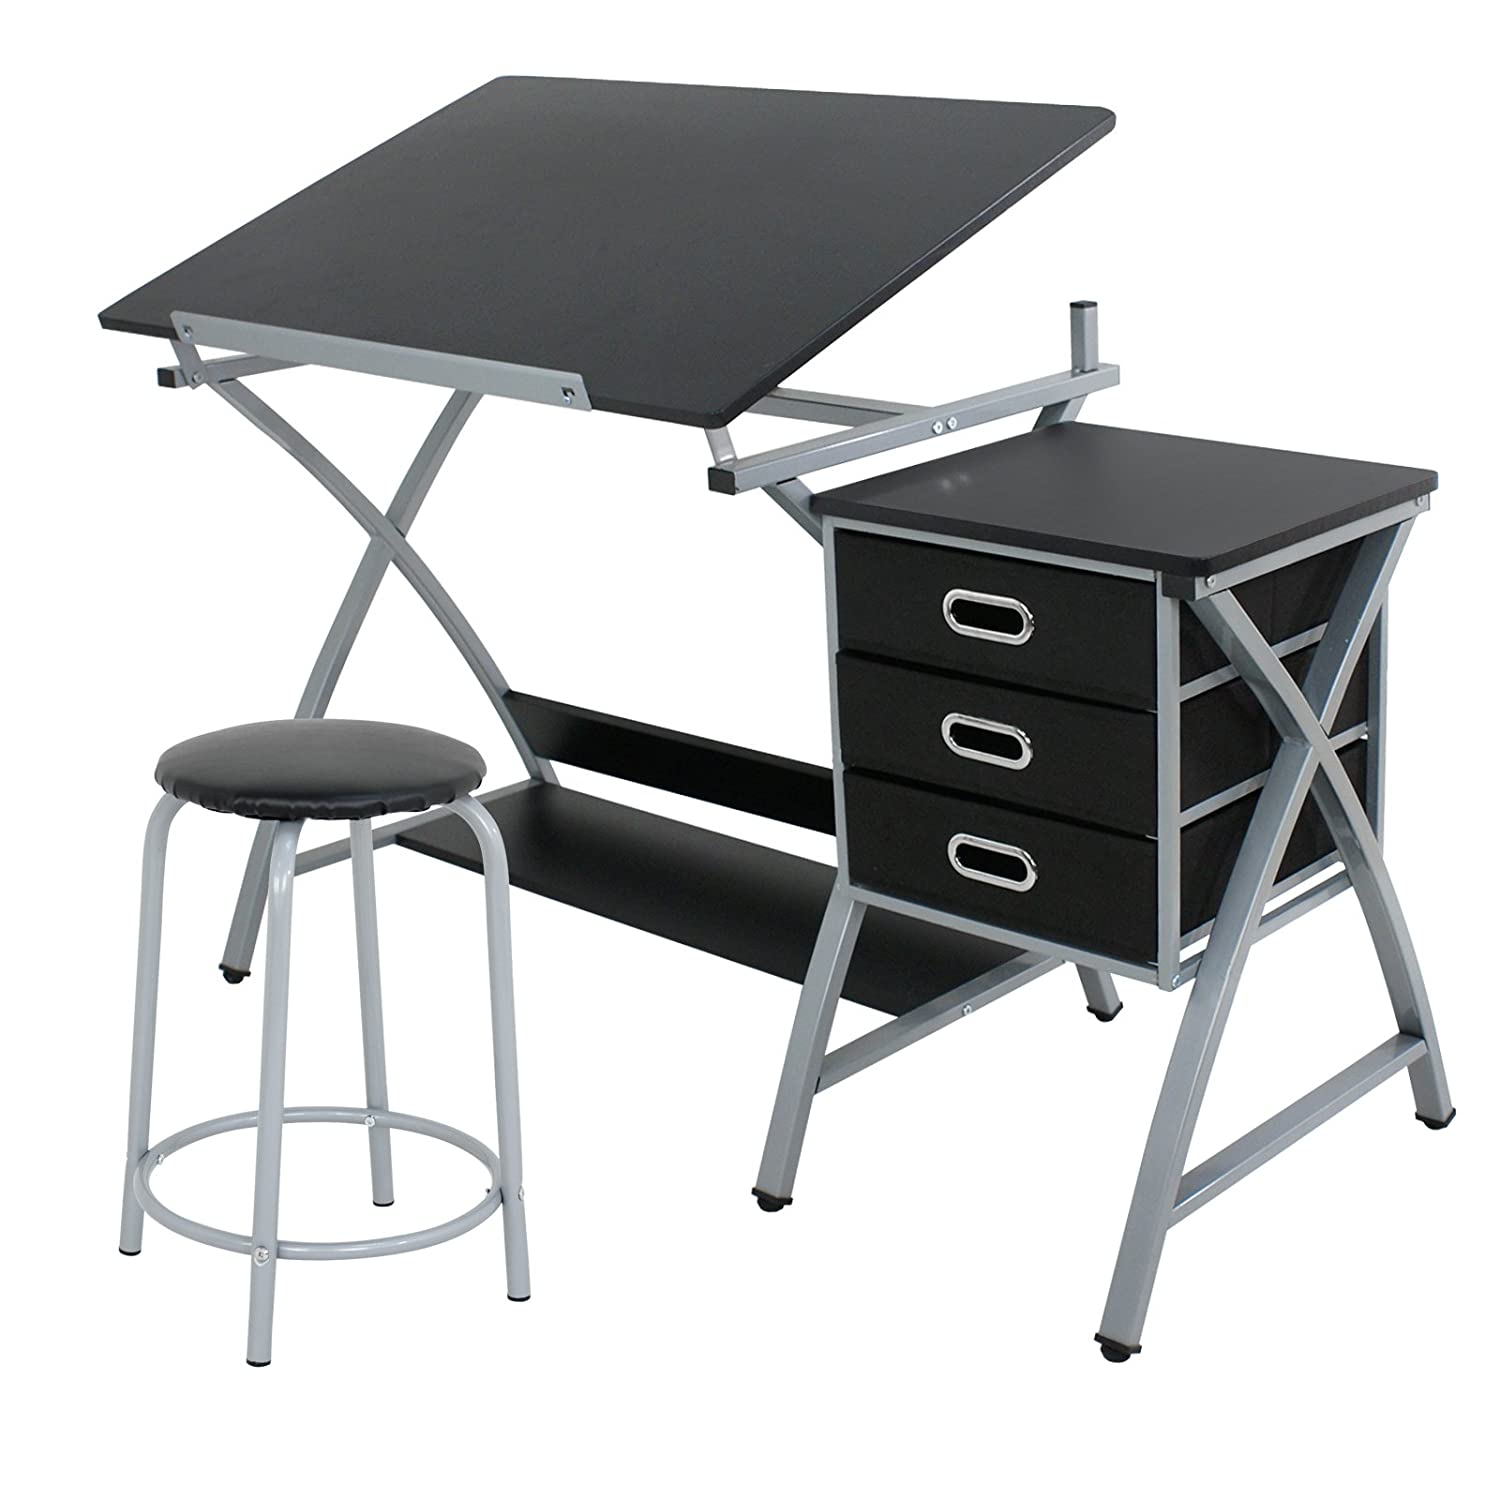 ZENY MDF Drafting Draft Table Art U0026 Craft Drawing Desk Art Hobby Folding Adjustable  Craft Table ...